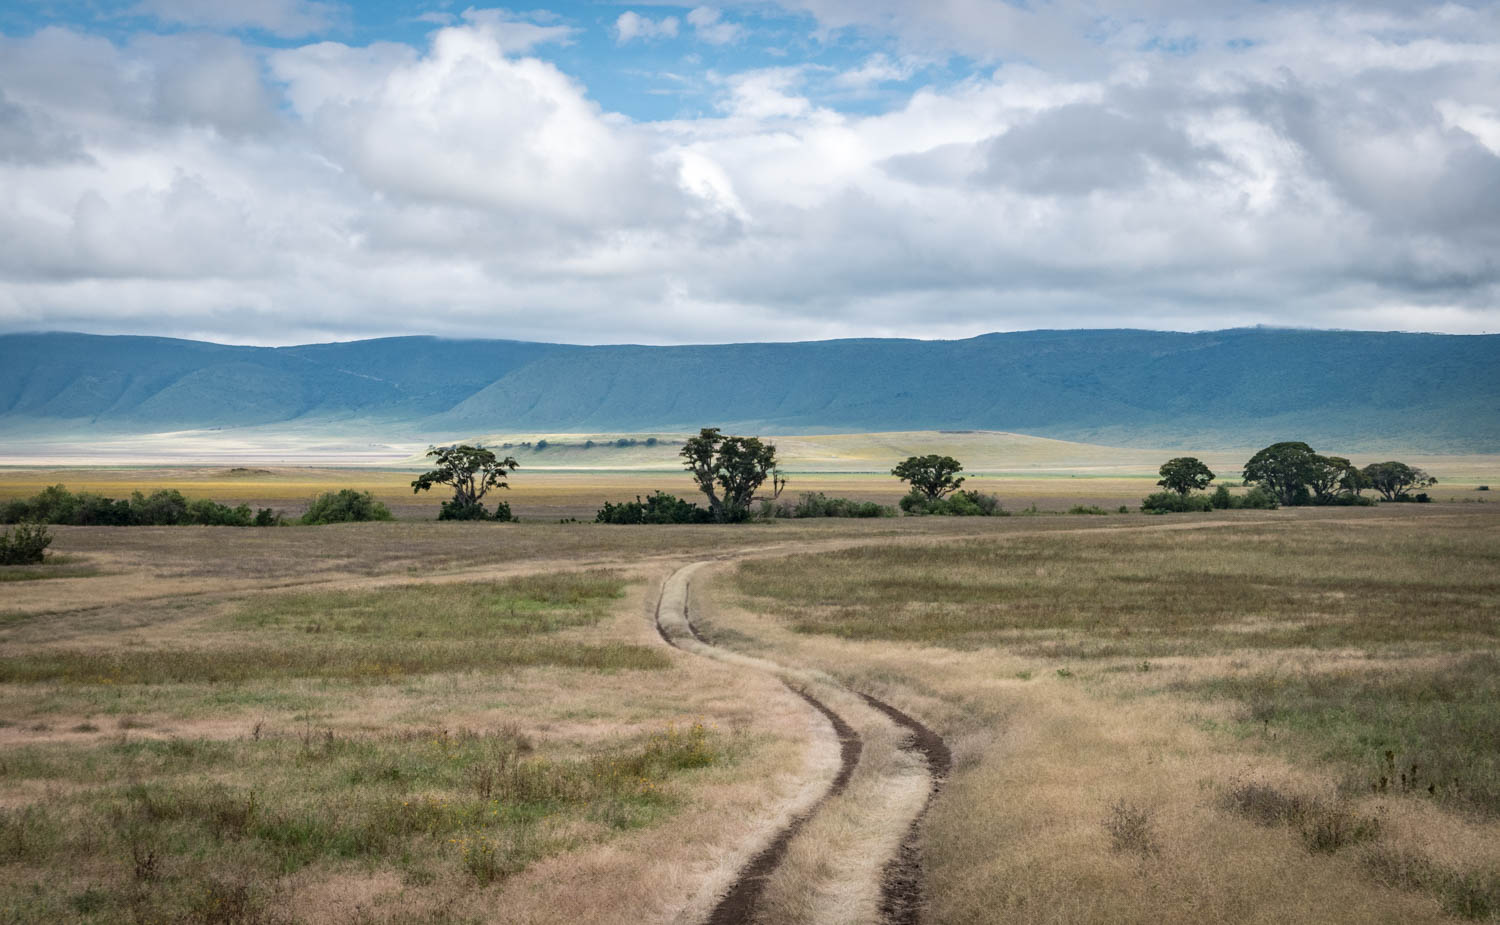 Tanzania national parks and destinations - Ngorongoro conservation area and crater